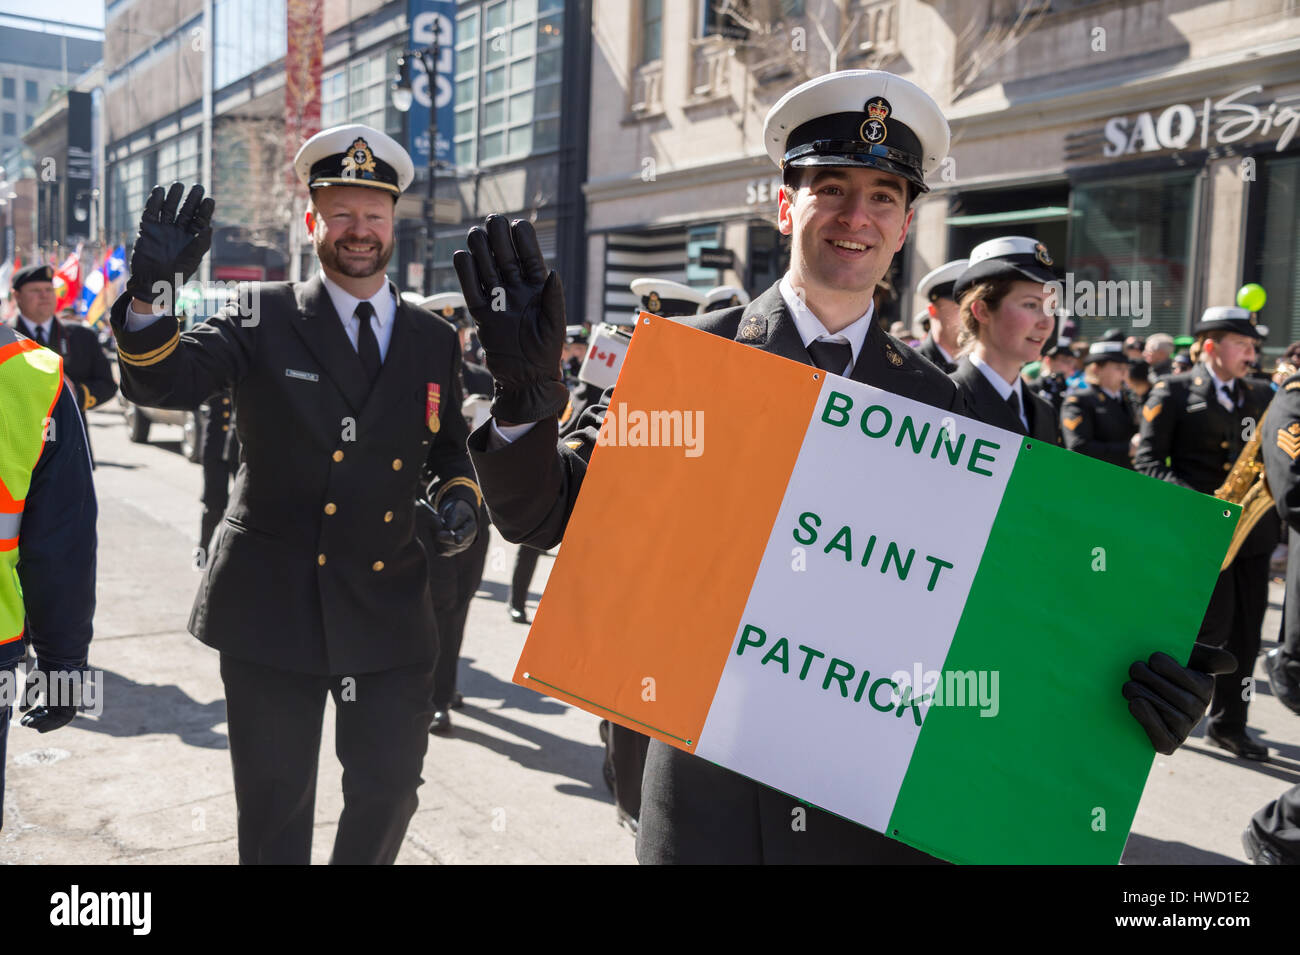 Montreal, Canada - 19 March 2017: Pilots at Montreal's St. Patrick's Day parade - Stock Image